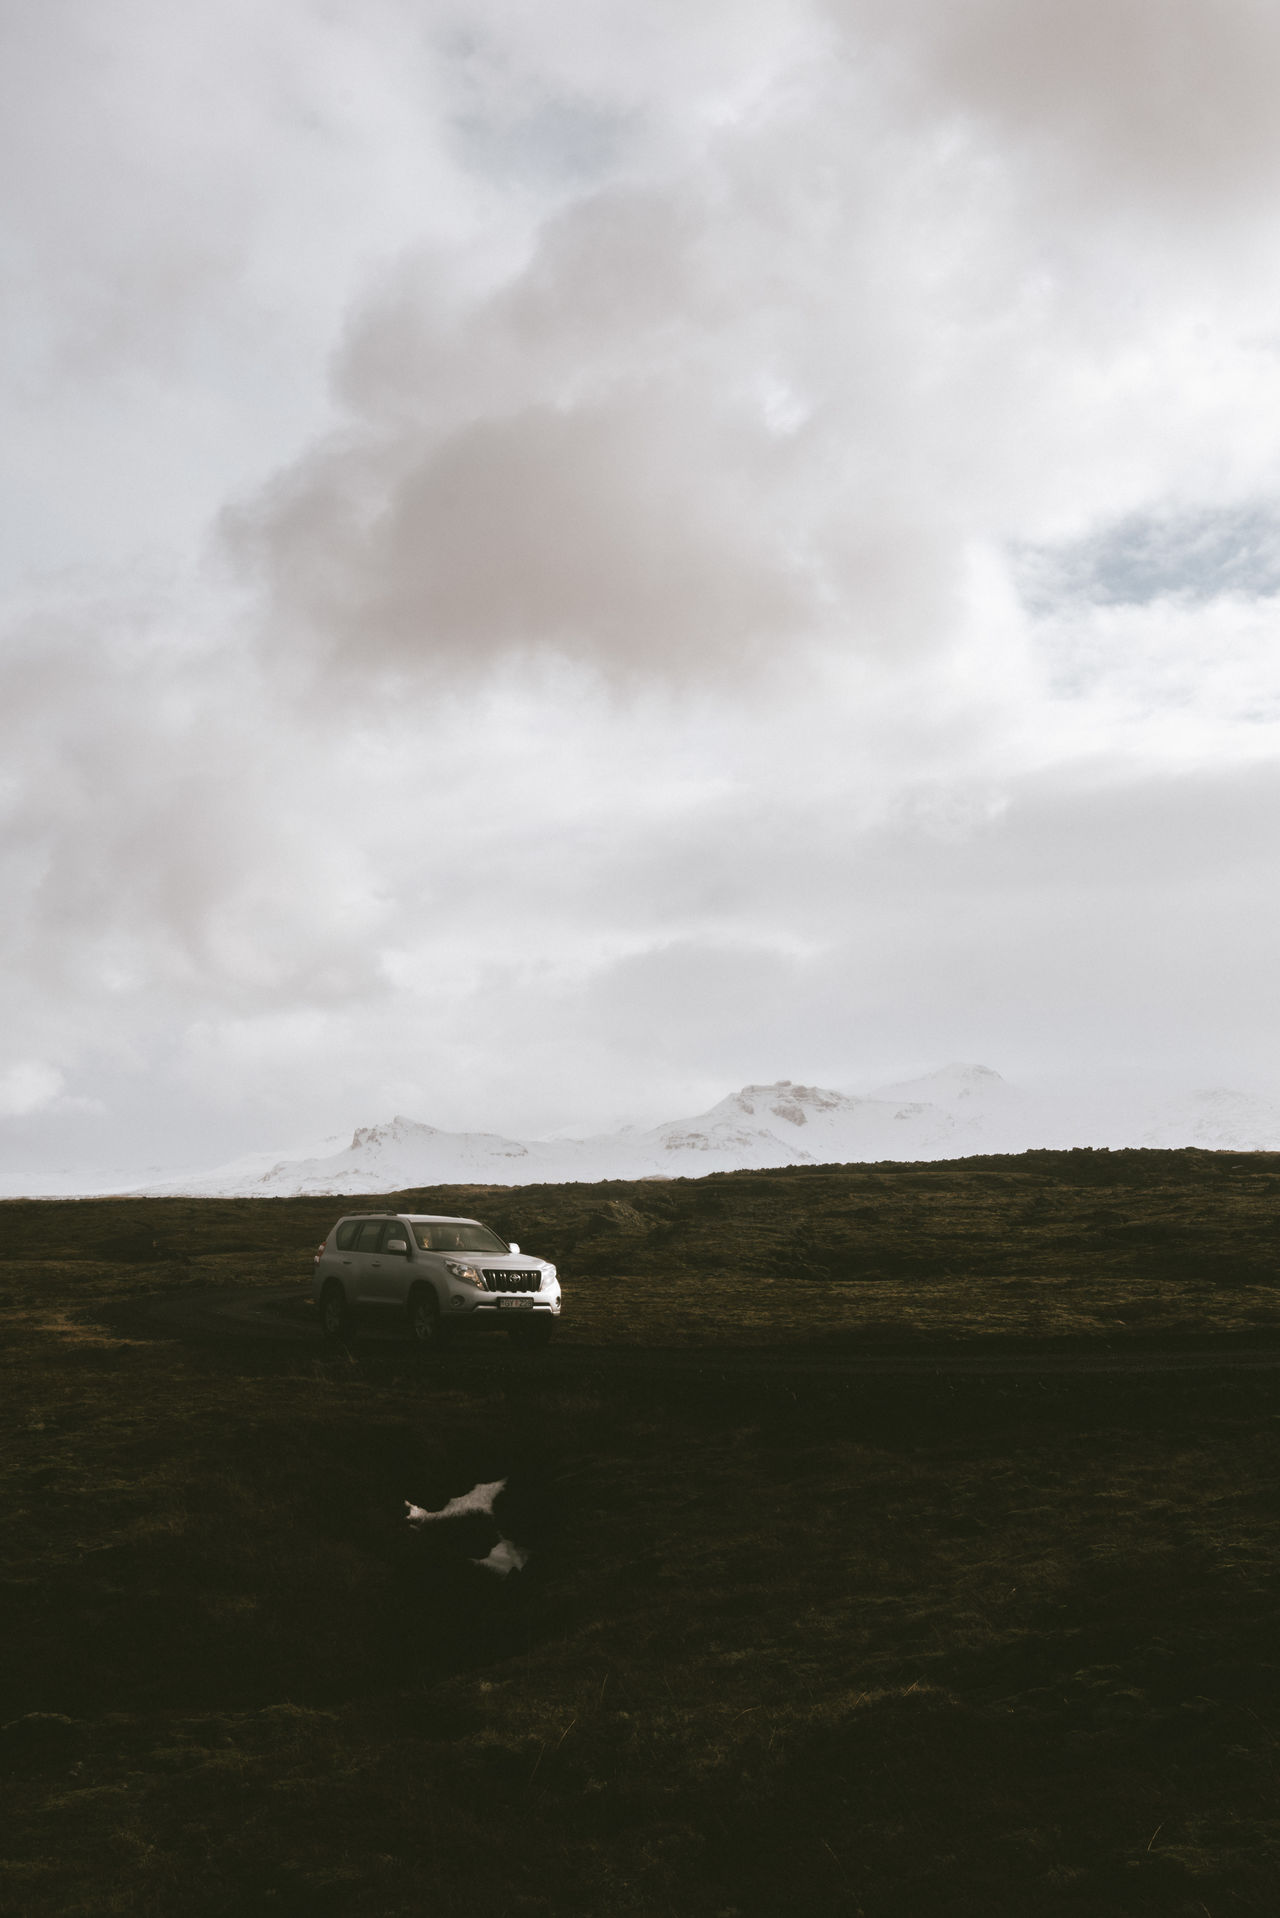 Car in the icelandic landscape 4x4 Beauty In Nature Car Cloud - Sky Day Field Grass Landscape Nature No People Outdoors Scenics Sky Tranquility Transportation